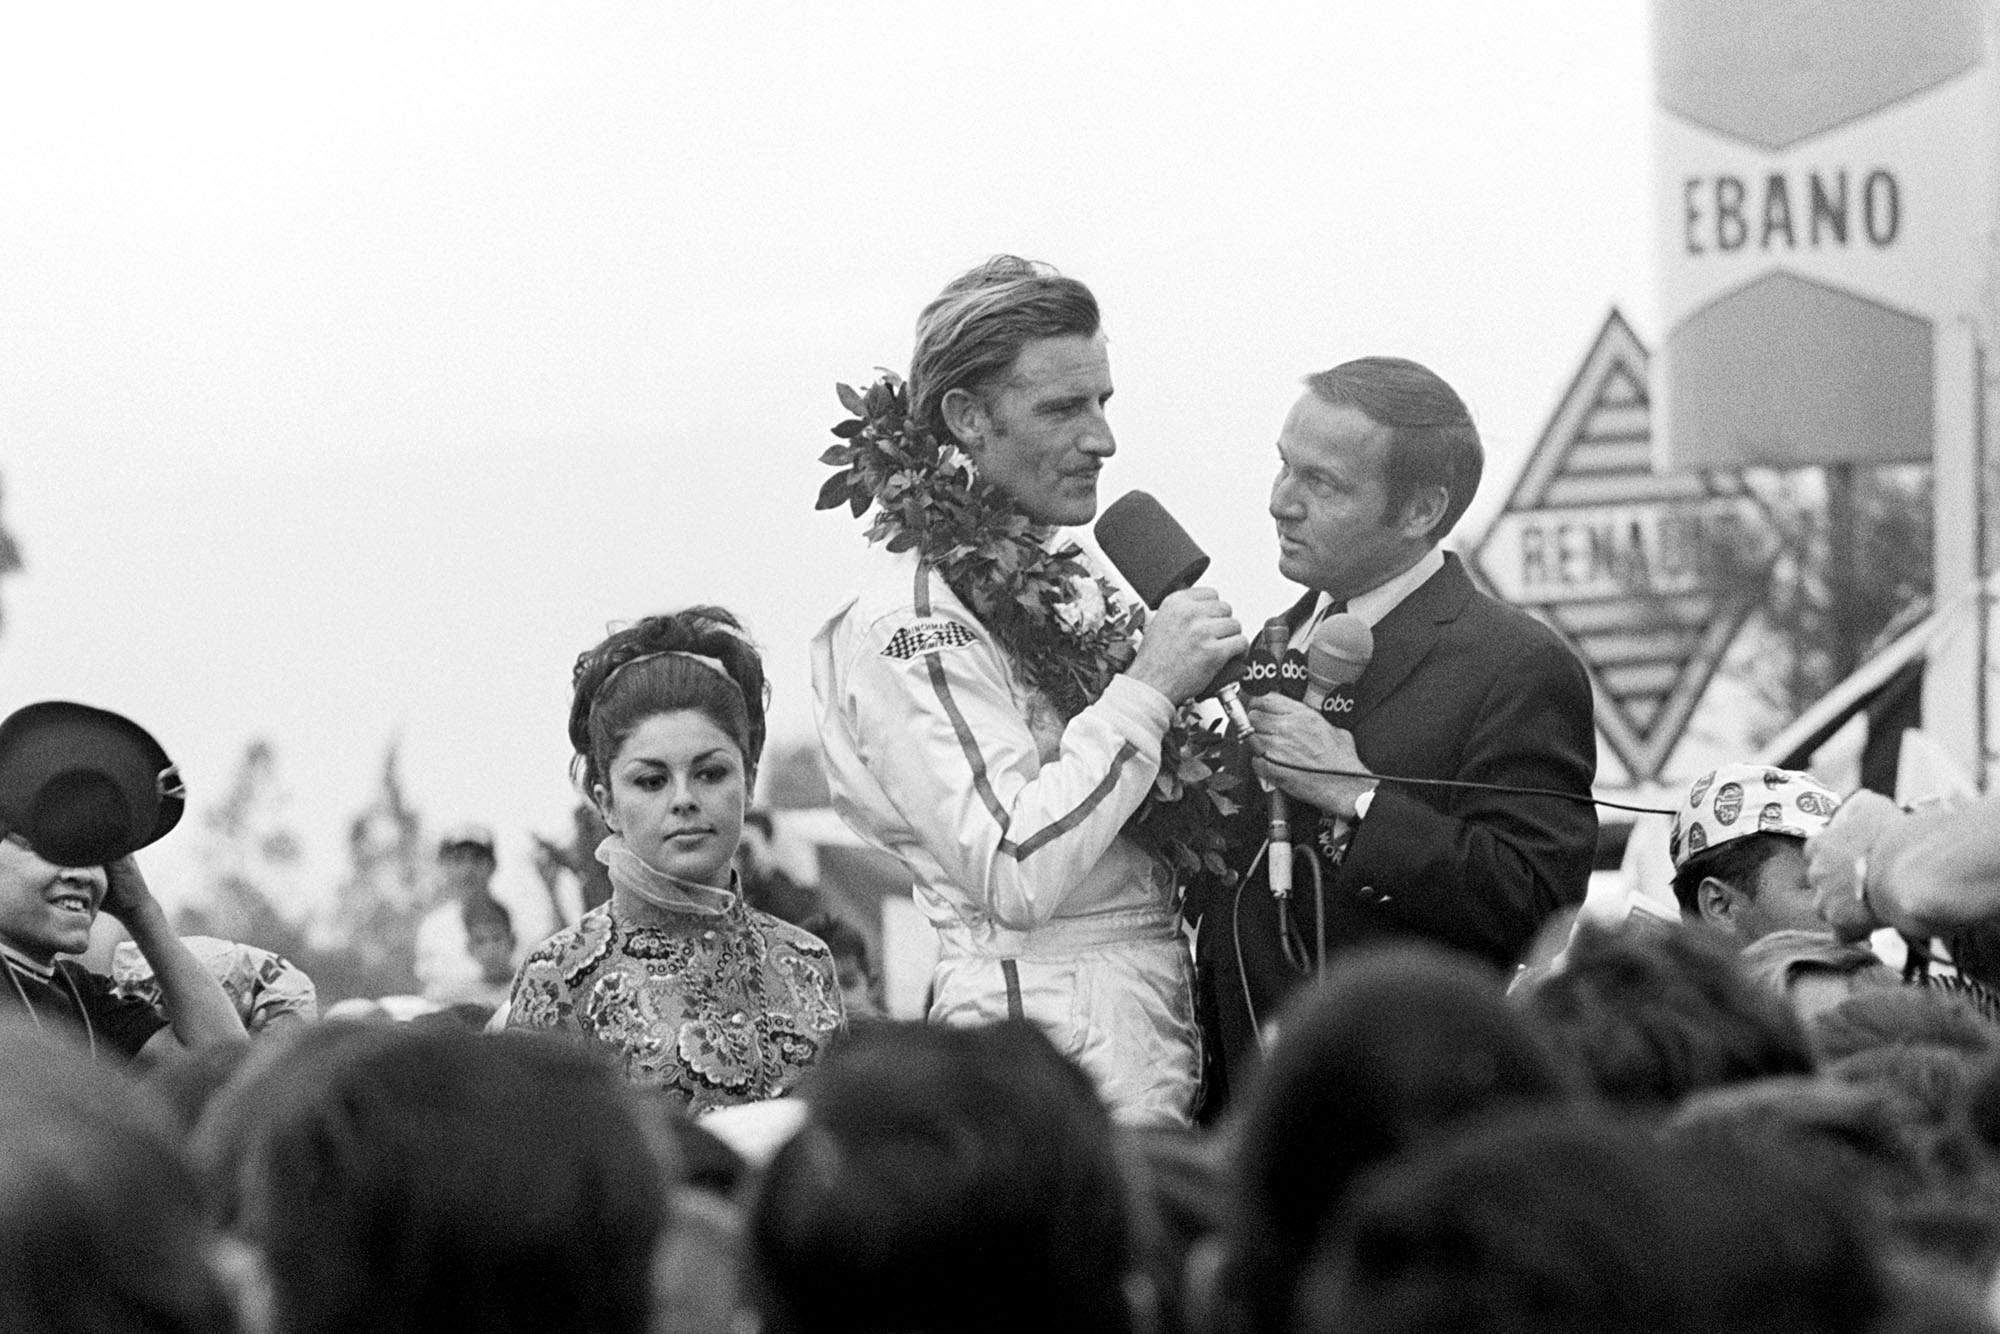 Graham Hill on the podium after winning the 1968 Mexican Grand Prix and F1 Driver's Championship with it.